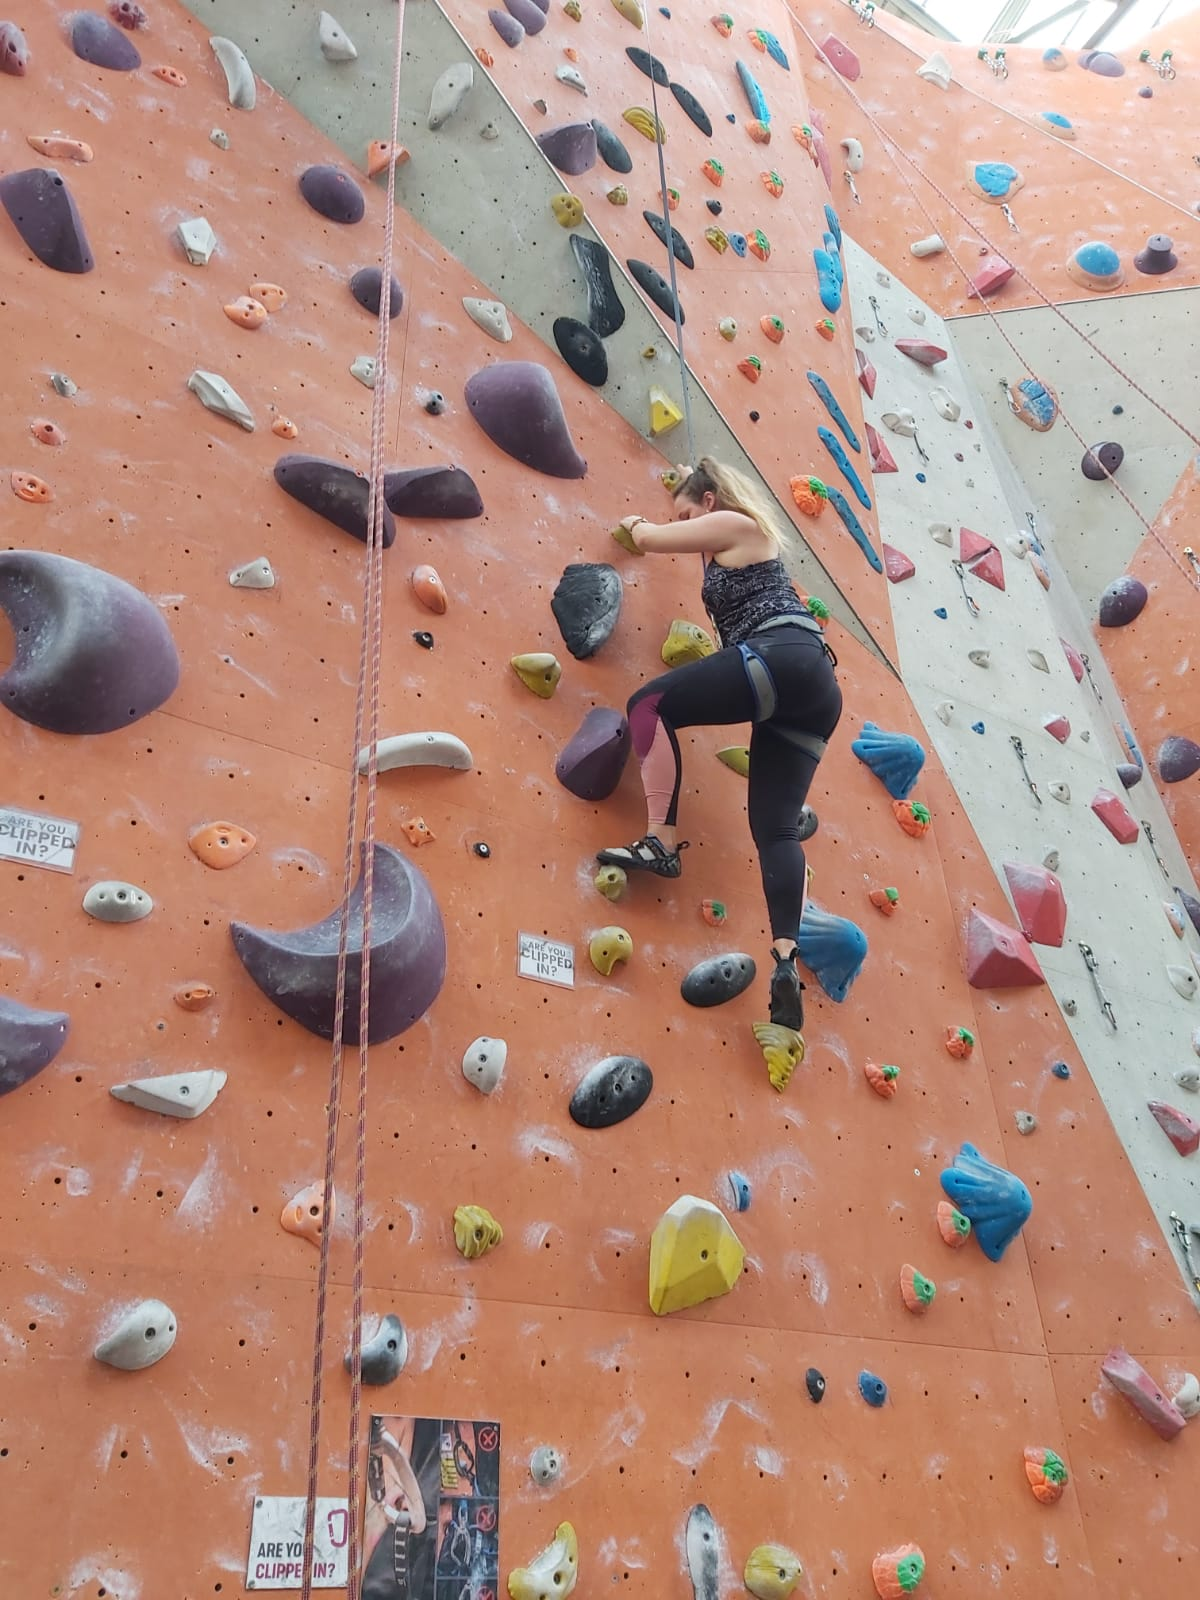 Just let go. Auto-belaying at Reading Climbing Centre